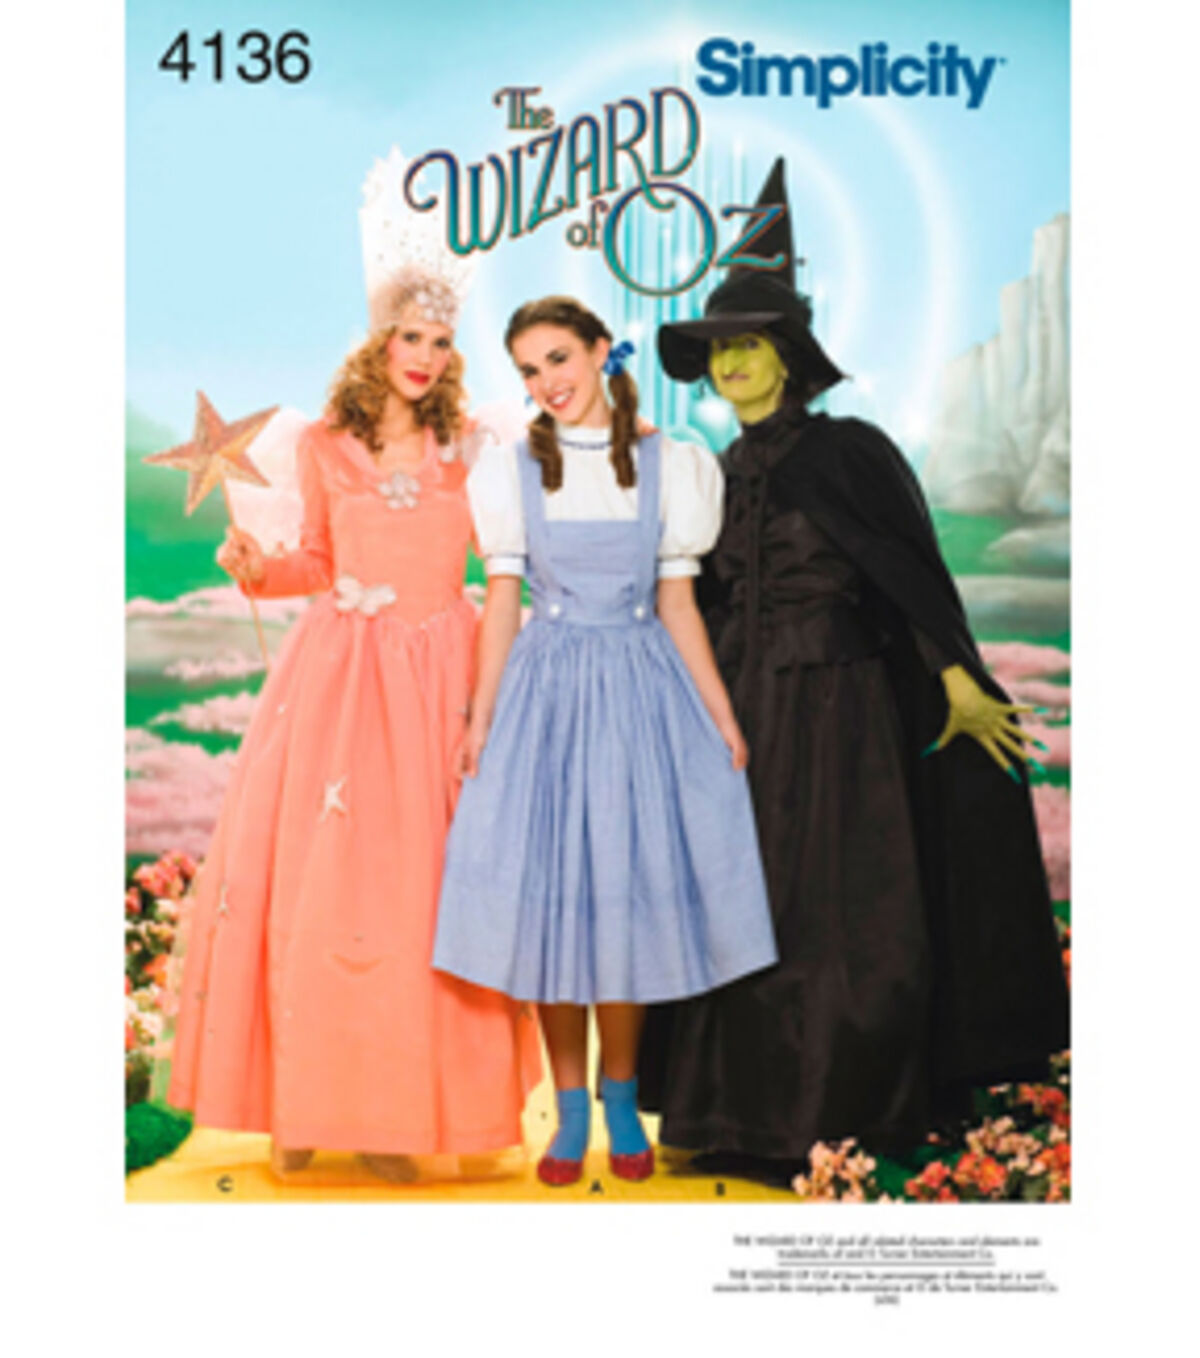 1940s Sewing Patterns – Dresses, Overalls, Lingerie etc Simplicity Pattern 4136 - Misses The Wizard of Oz Costumes - Sizes 6-8-10-12 $11.16 AT vintagedancer.com